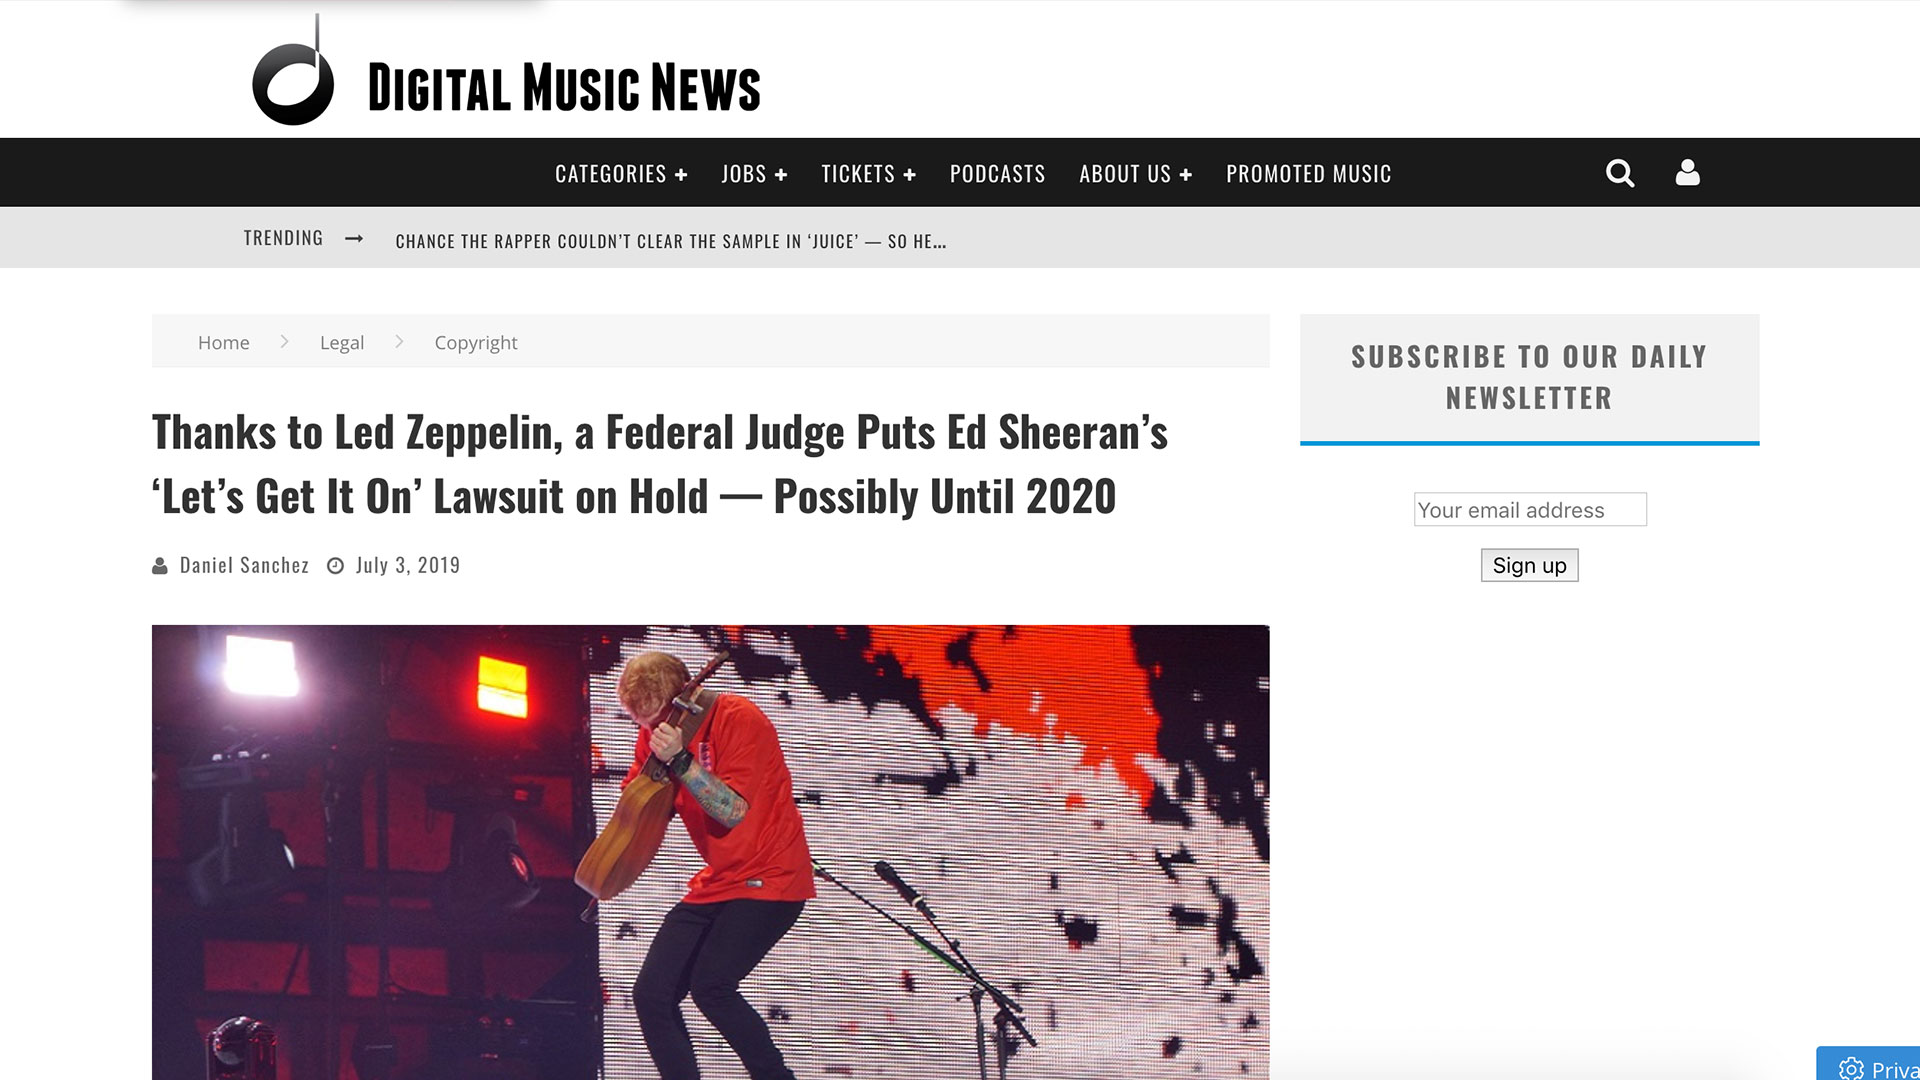 Fairness Rocks News Thanks to Led Zeppelin, a Federal Judge Puts Ed Sheeran's 'Let's Get It On' Lawsuit on Hold — Possibly Until 2020